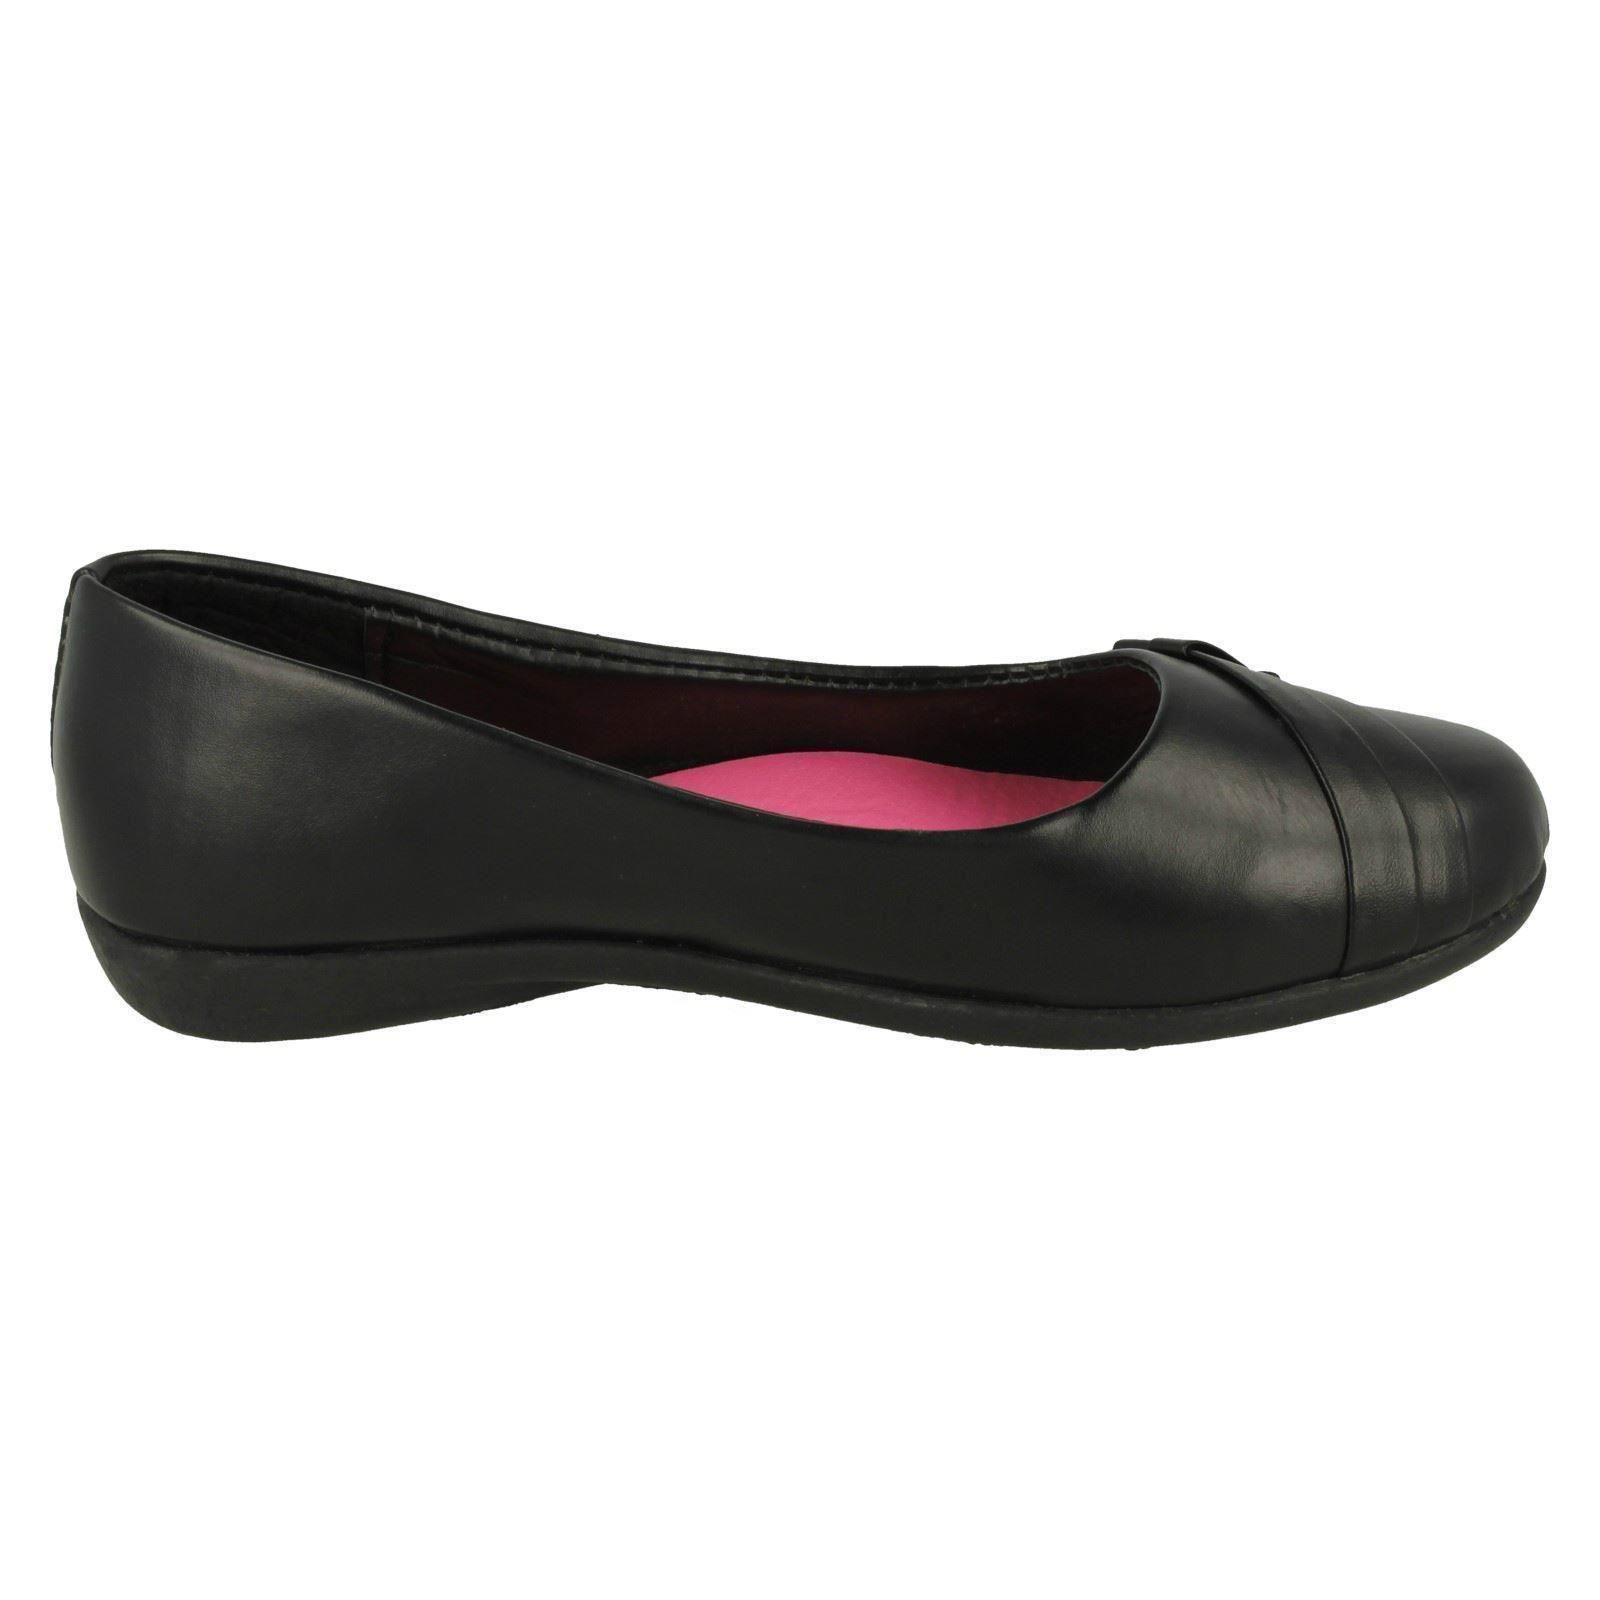 Girls Spot On Flat Shoes The Style - H2379